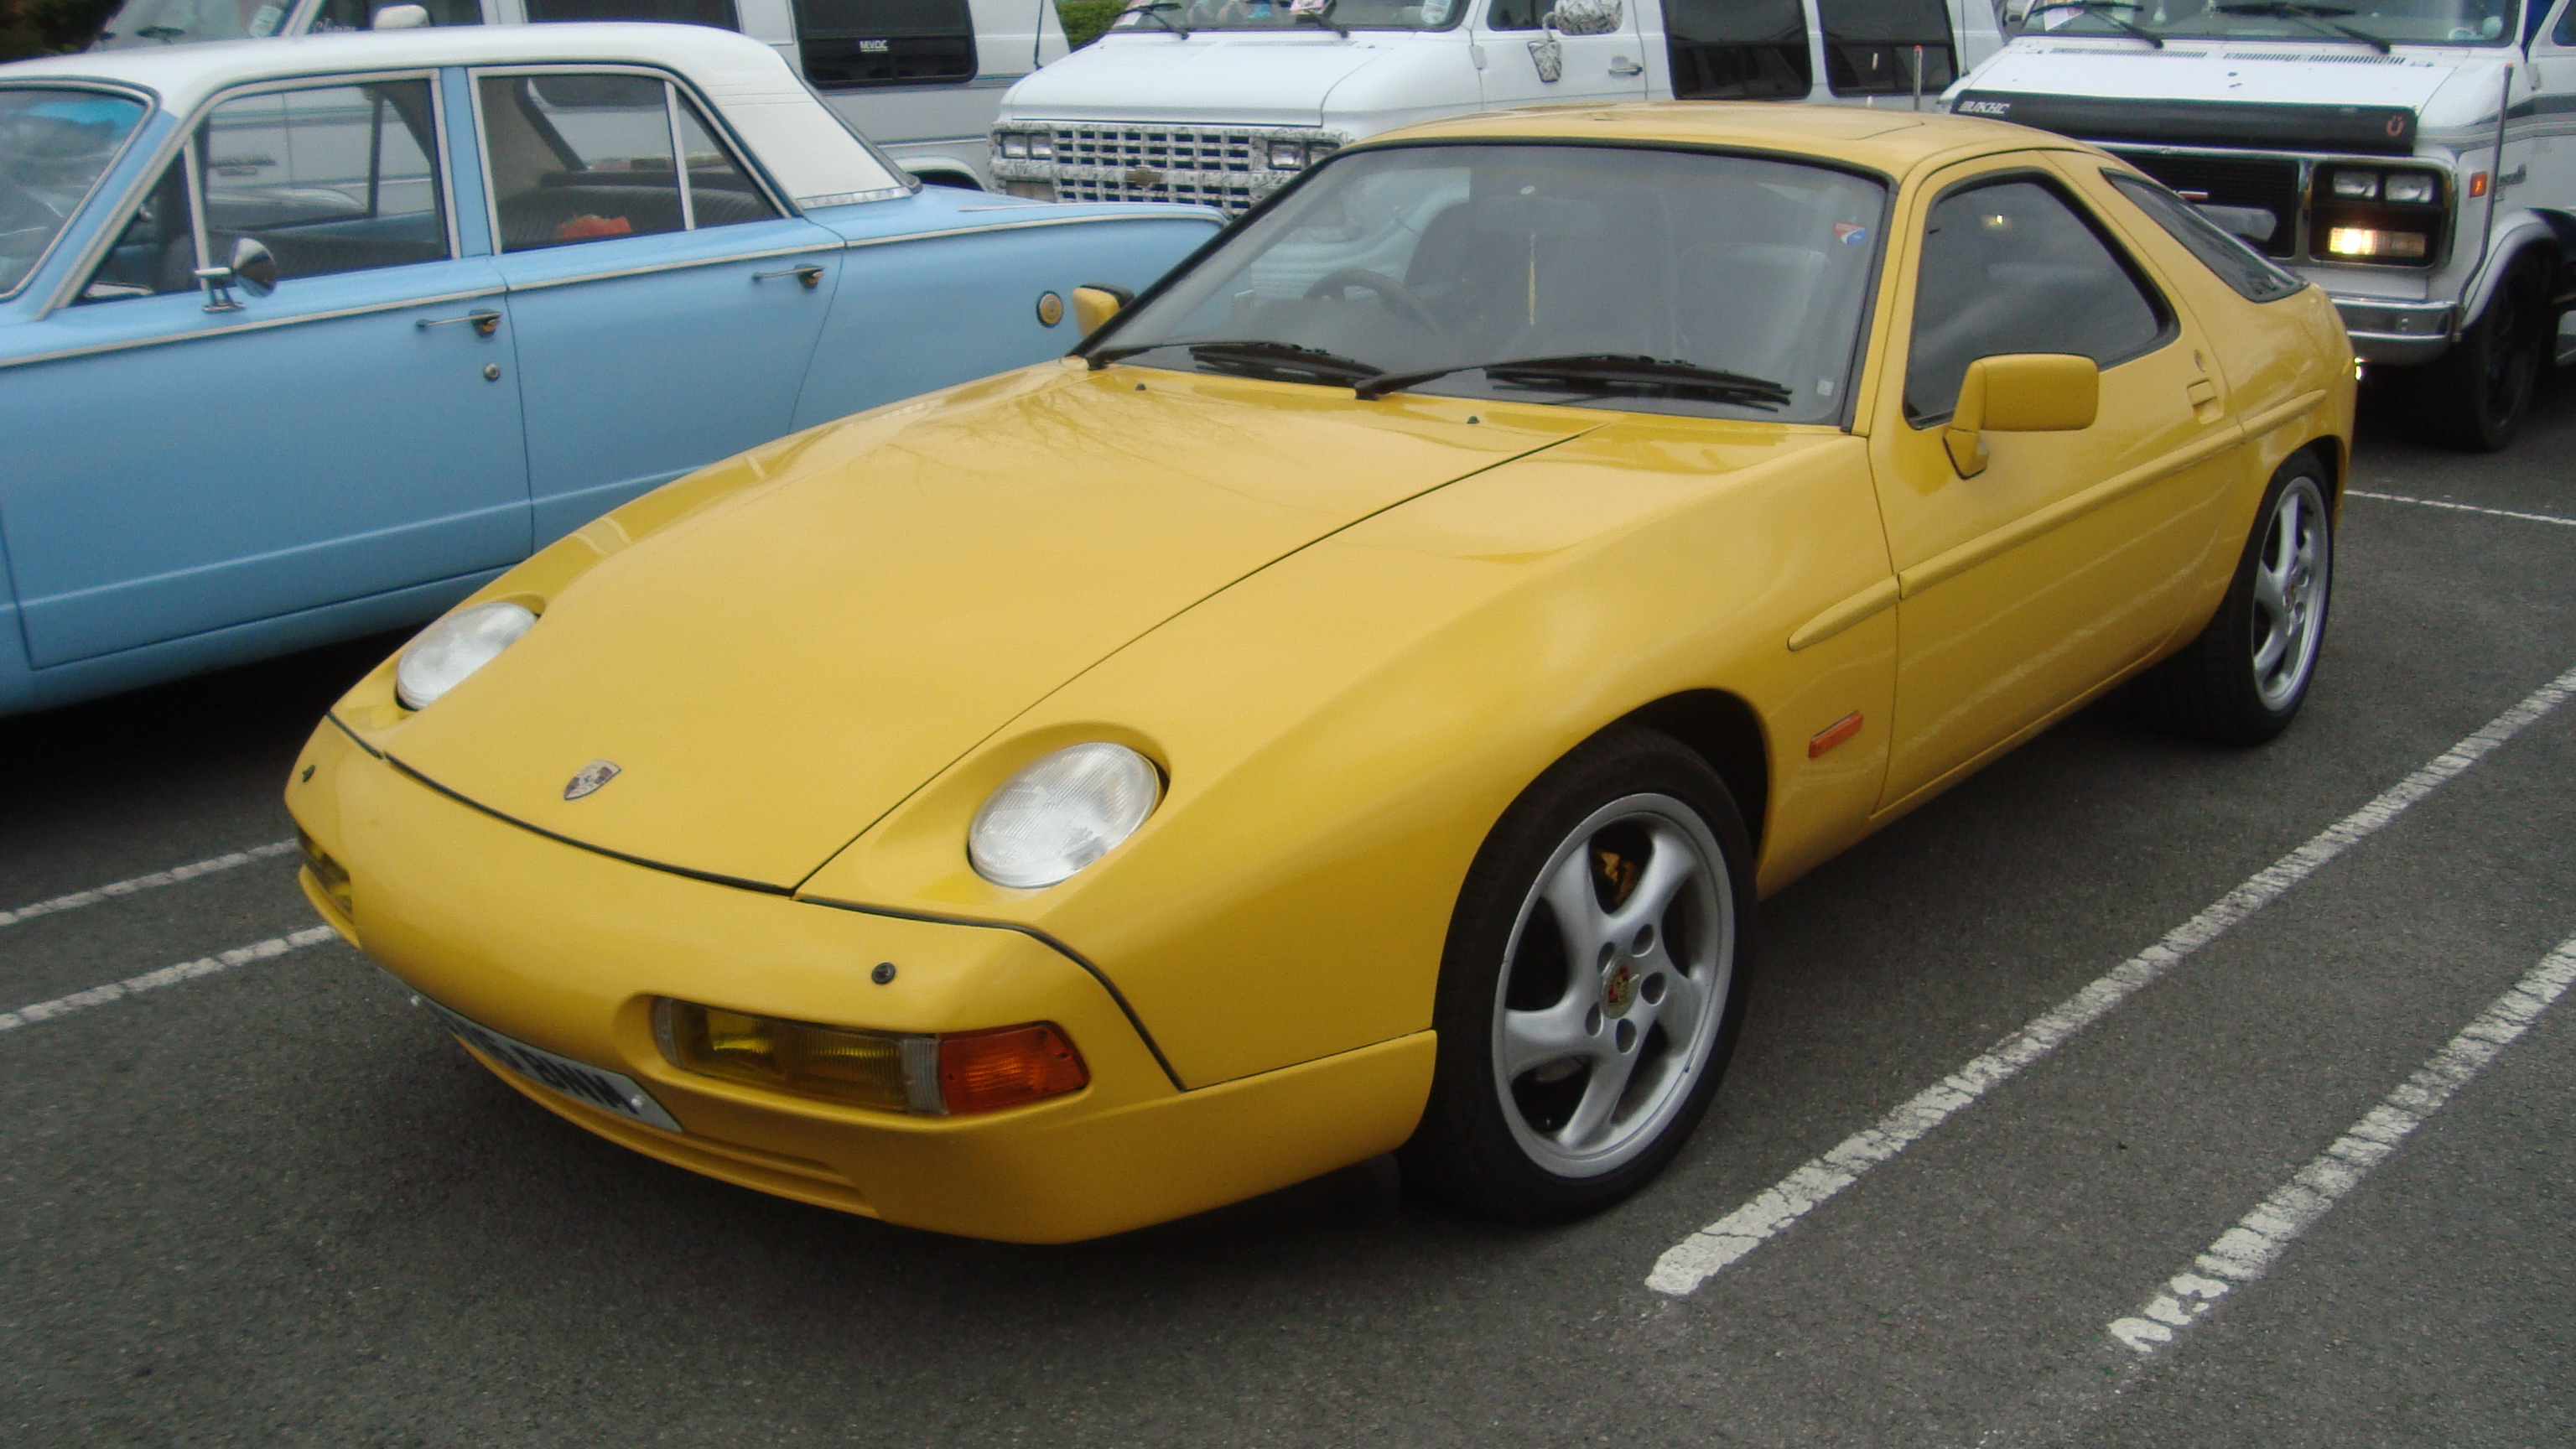 84 Porsche 928 Pictures to Pin on Pinterest - PinsDaddy